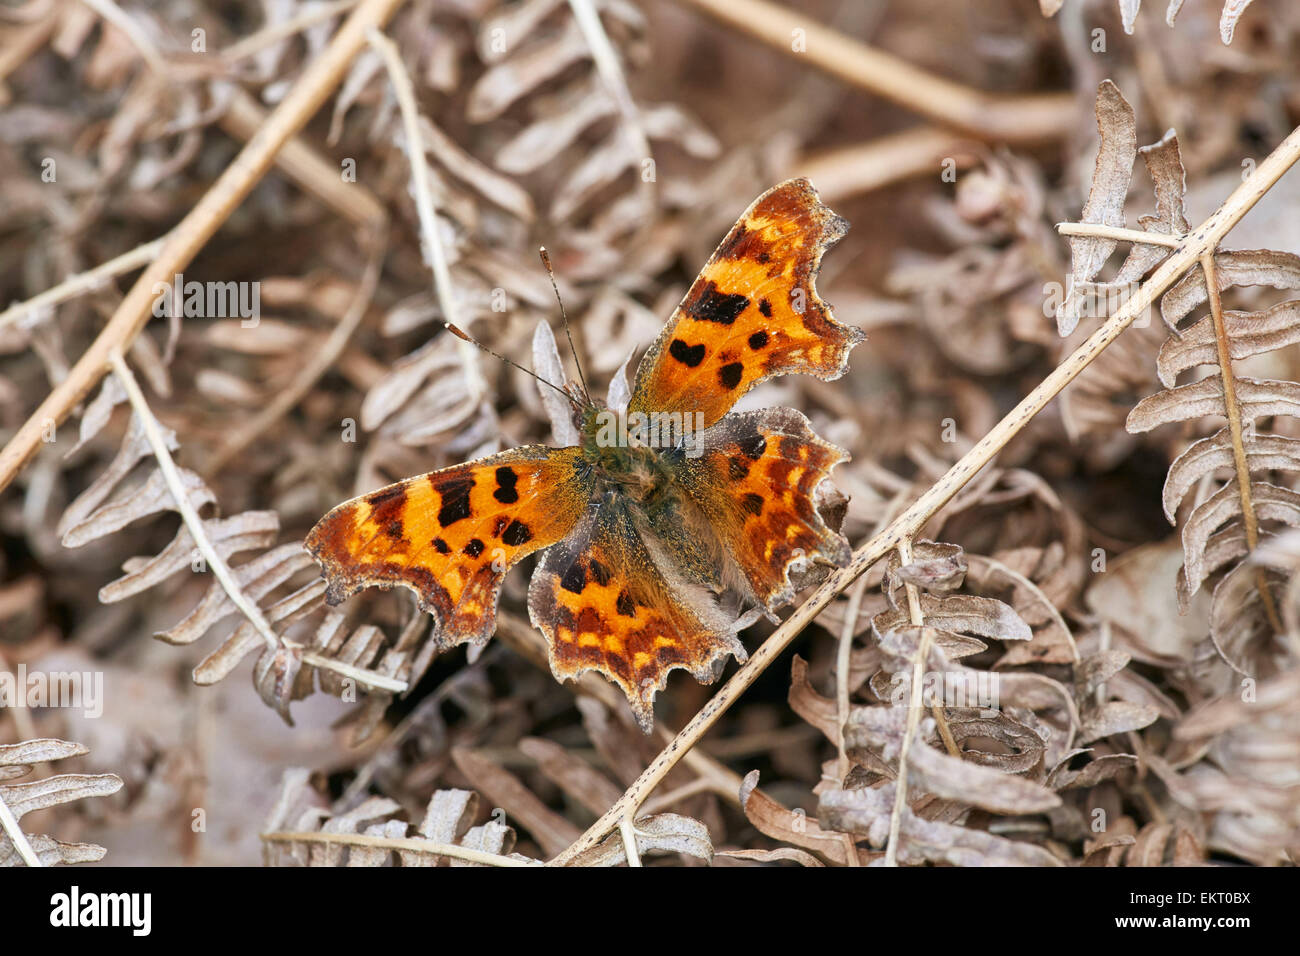 Comma butterfly on dead bracken after waking from hibernation. Bookham Common, Surrey, England. - Stock Image